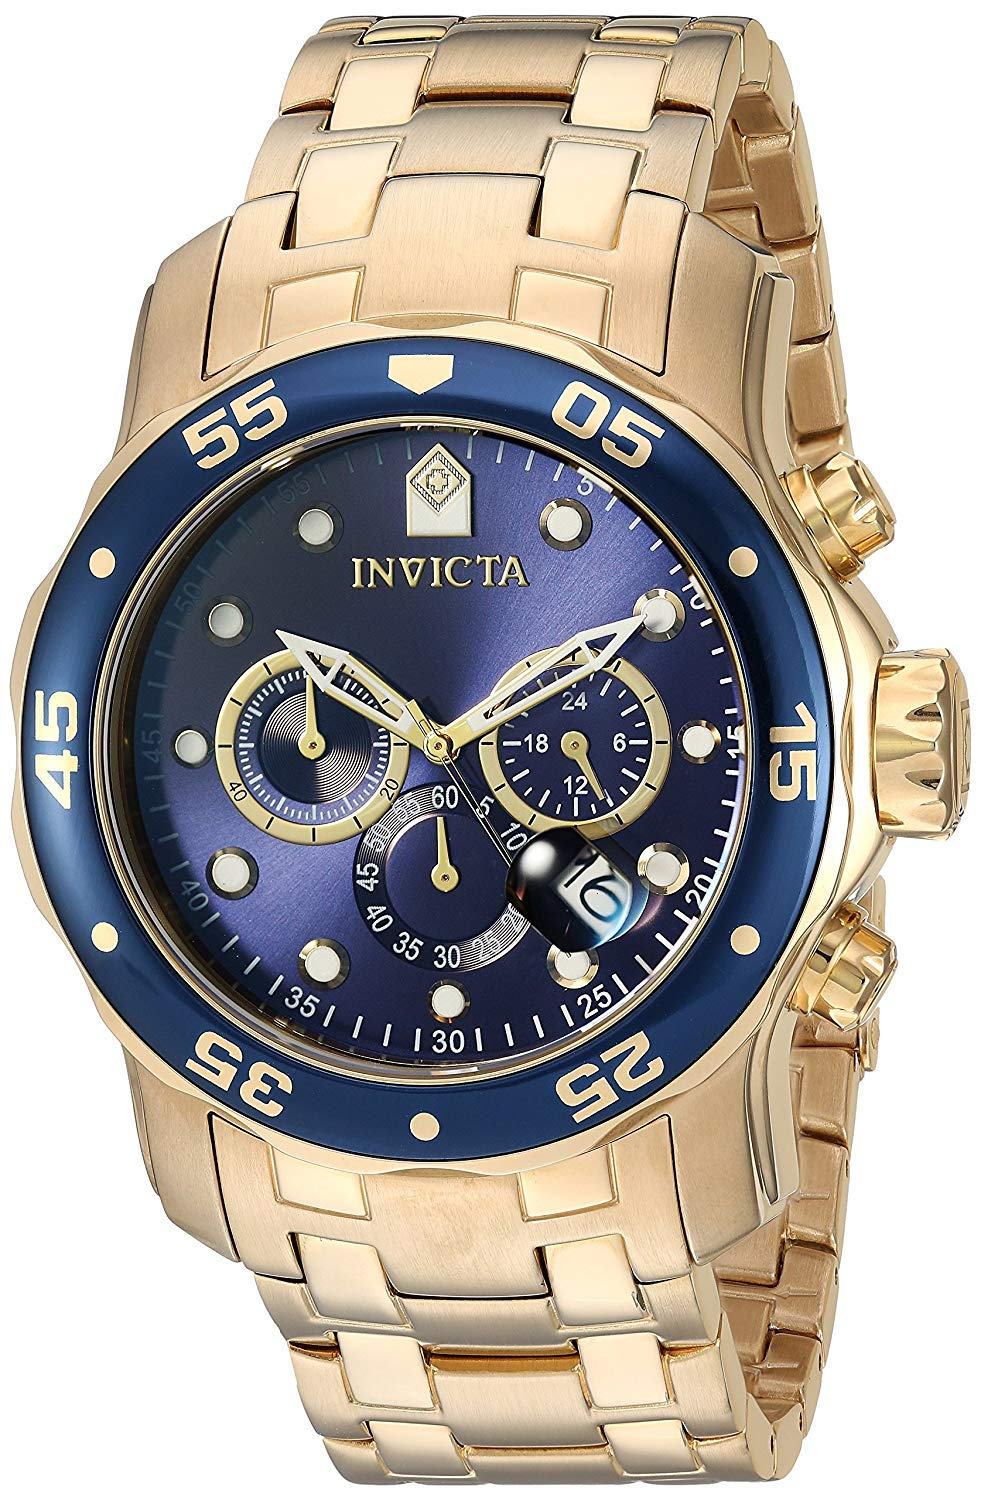 Invicta Pro Diver Rose Gold-Tone Stainless Steel  Chronograph Mens Watch 0073